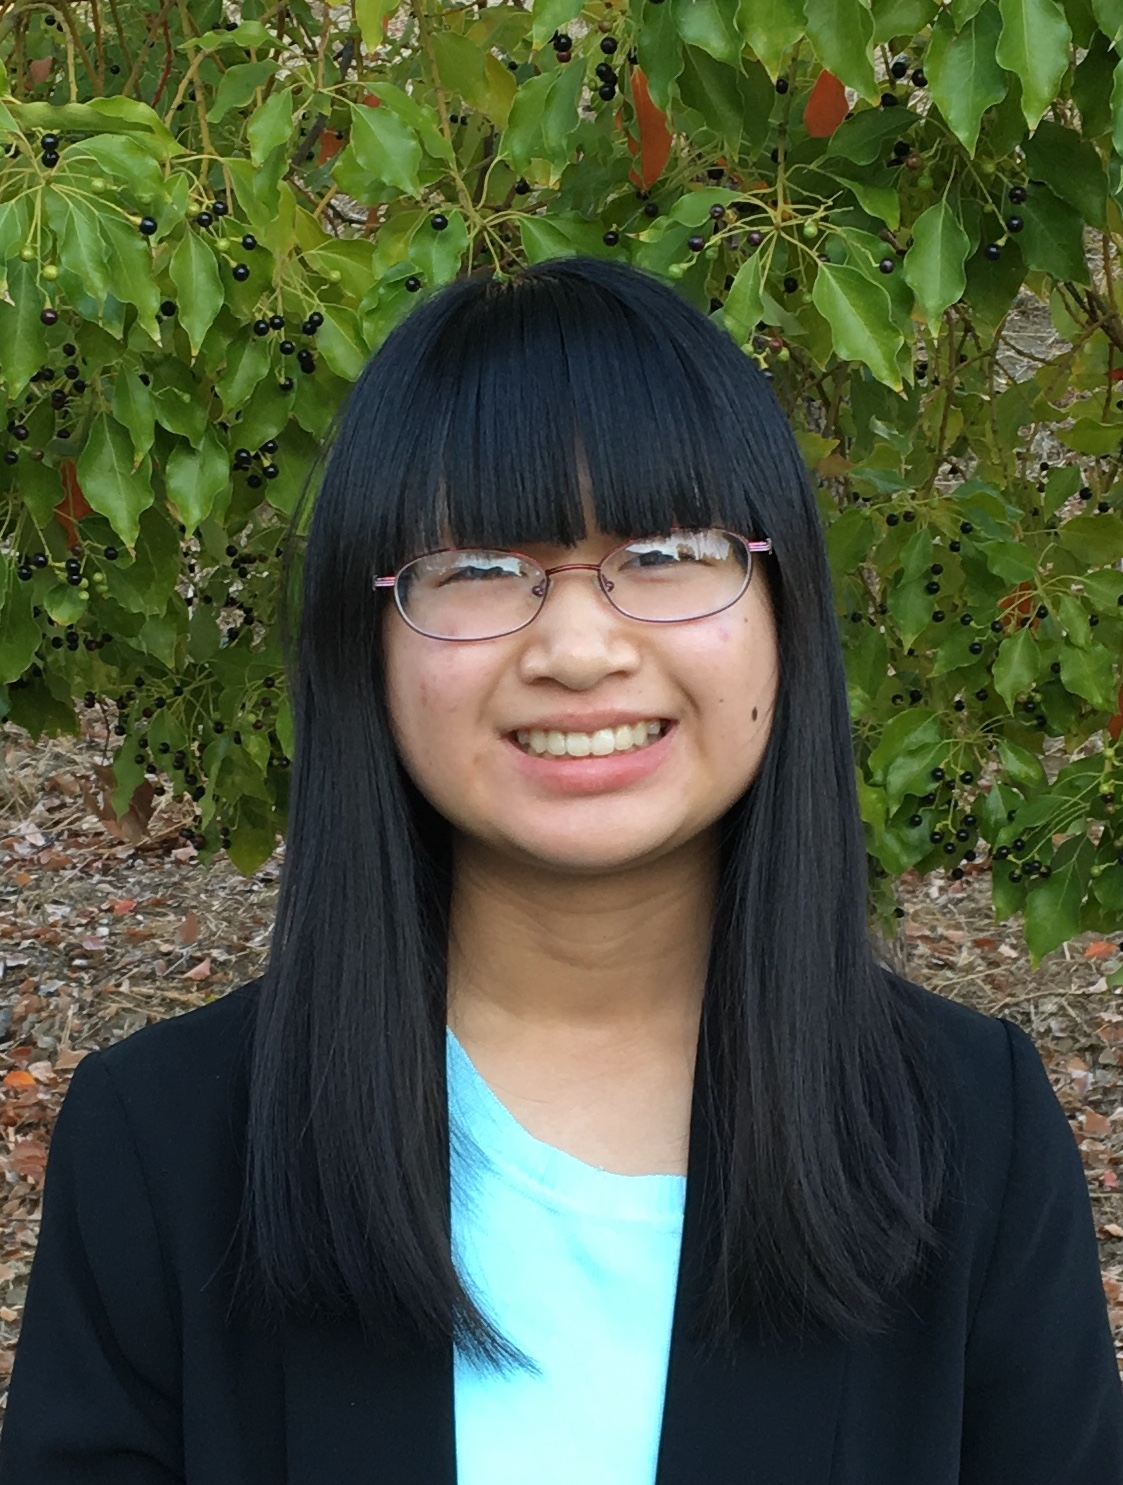 Janice Liu is a senior at Dublin High School and is beyond excited that she is a part of making this event happen! Attending hackathons throughout high school was essential to her growing interest and passion in tech. She hopes to empower young women to challenge themselves, explore technology, and gain inspiration to use technology to make an impact in the world!